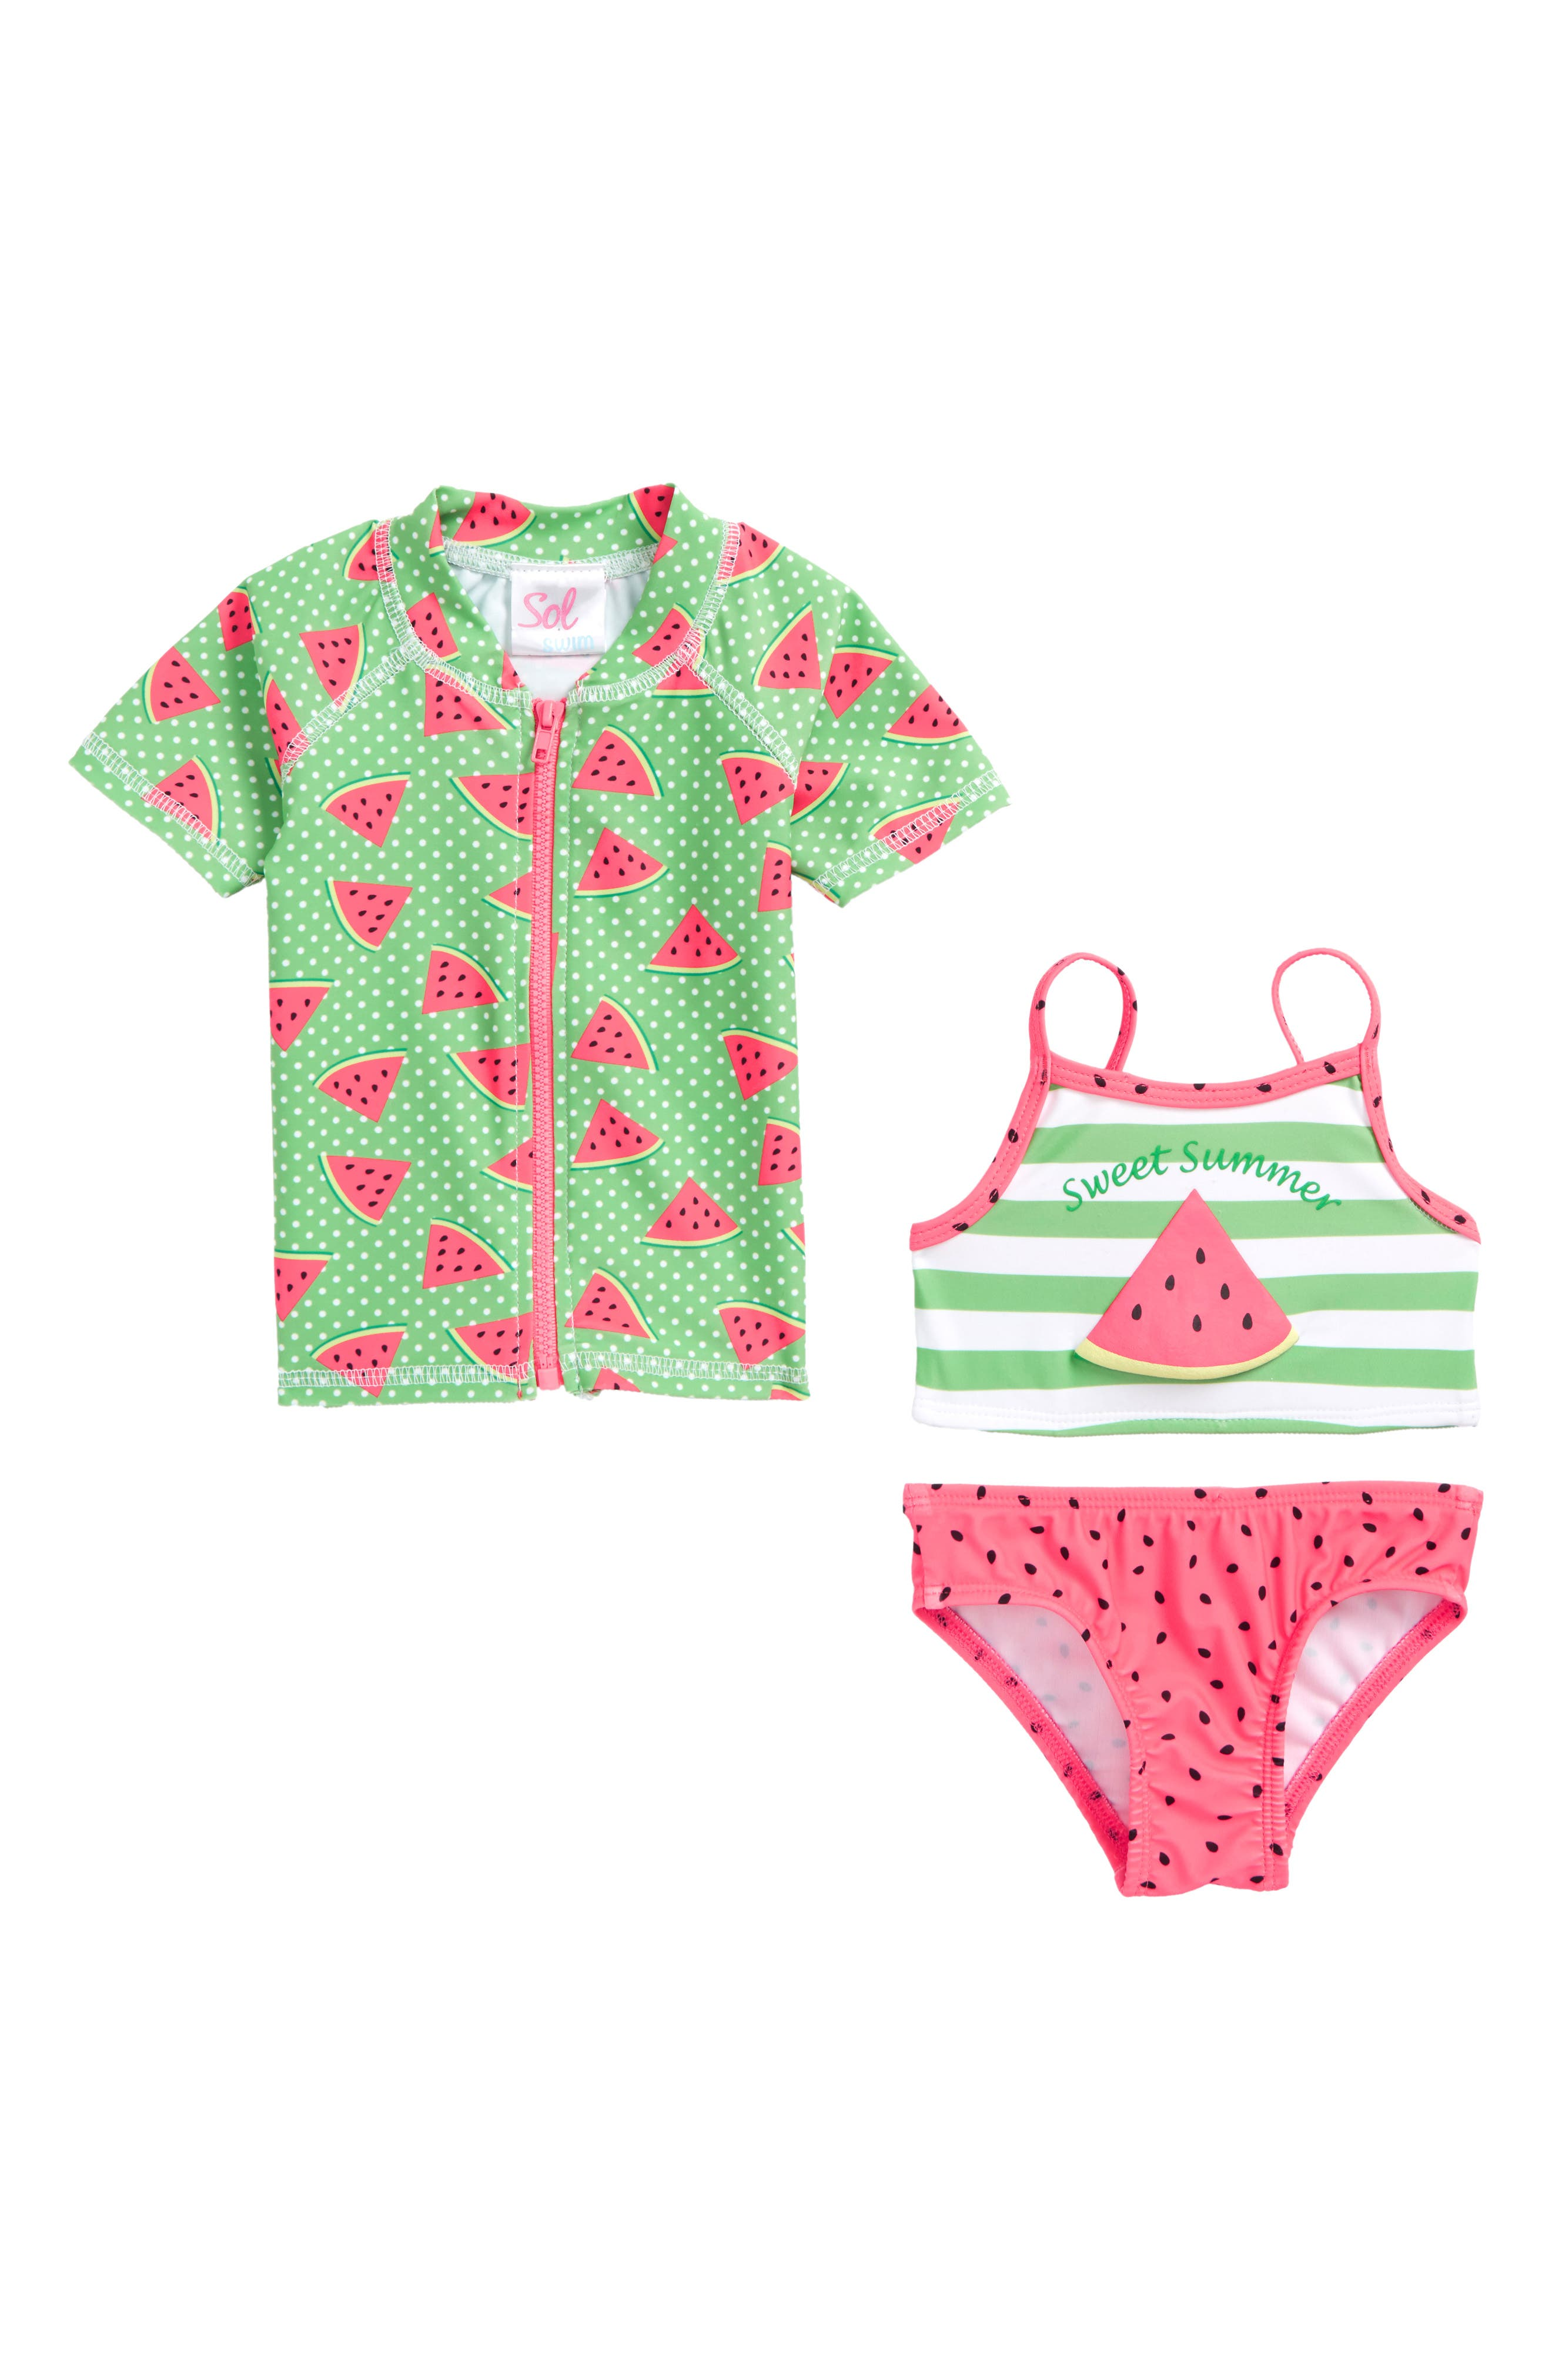 Sweet Summer Two-Piece Swimsuit with Rashguard,                         Main,                         color,